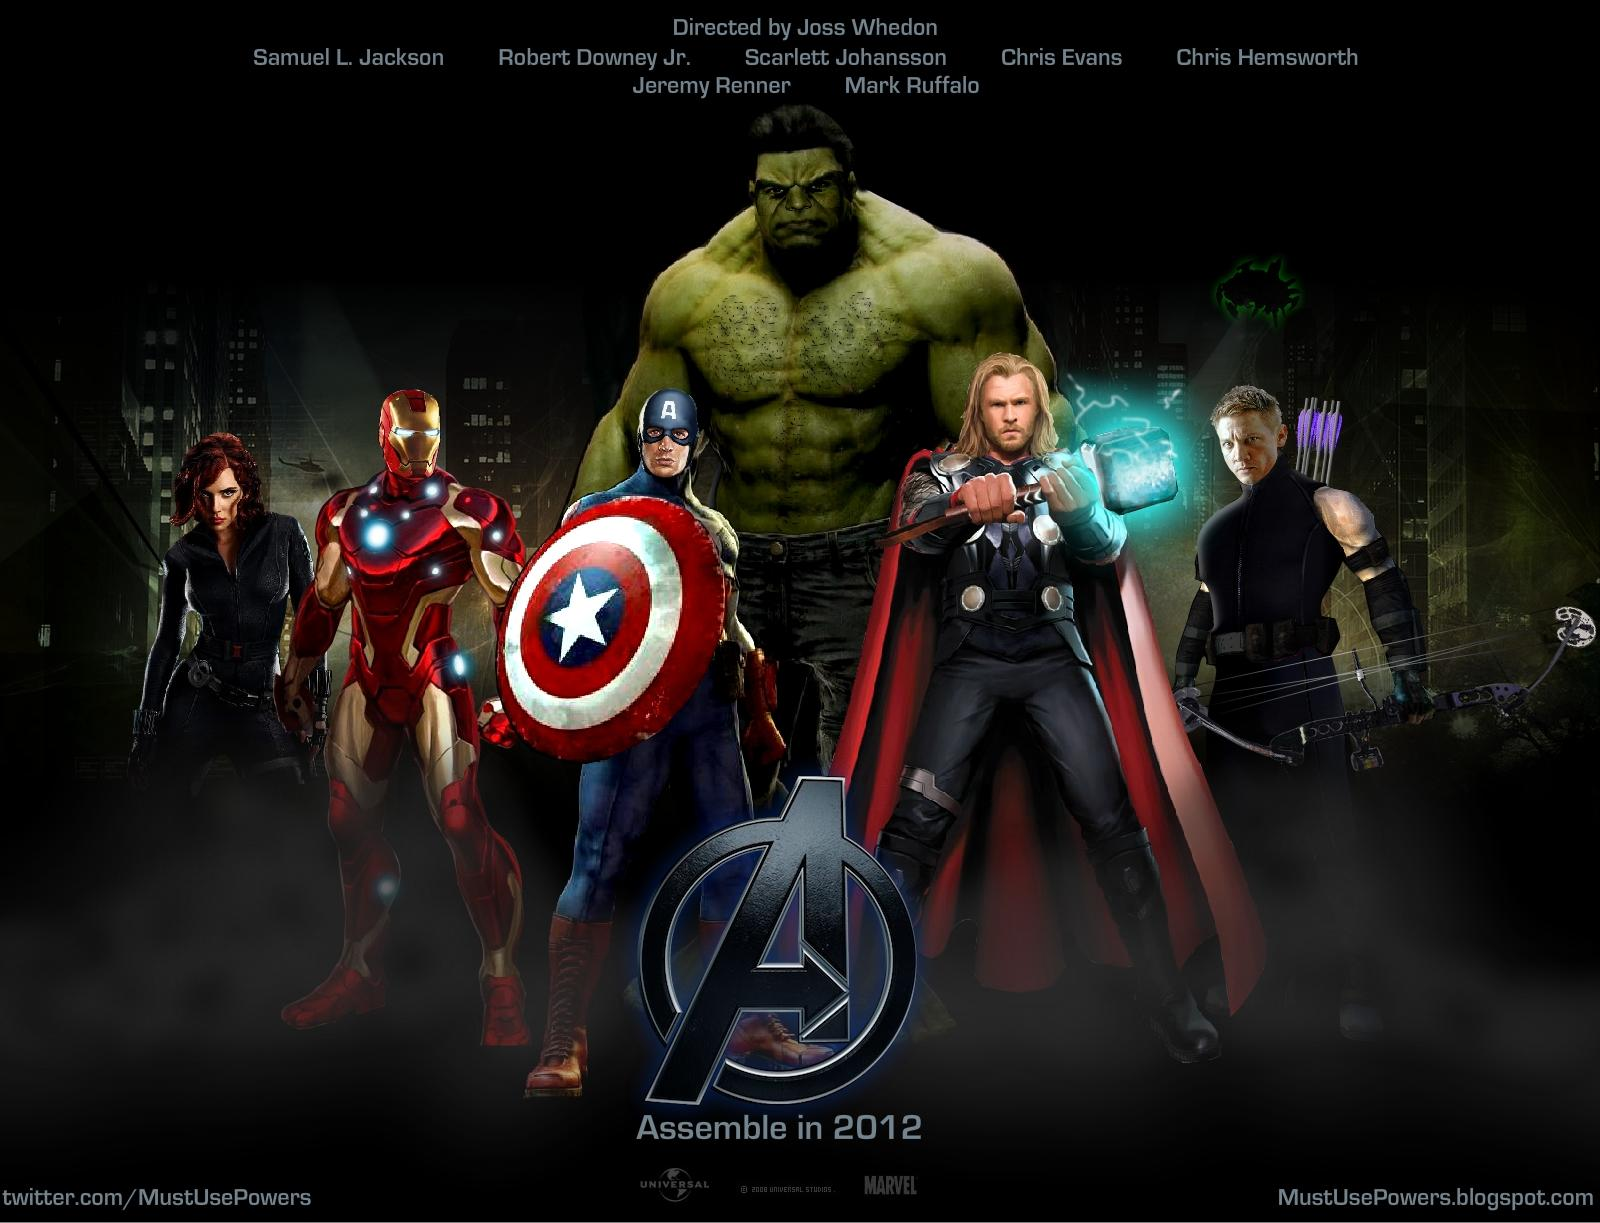 http://2.bp.blogspot.com/-Vw_31dx3QUI/T6v3GmIk2GI/AAAAAAAAEYM/JKSd_LJ0-KE/s1600/1332975083_avengers-movie-2012-hd-wallpaper-3.jpg